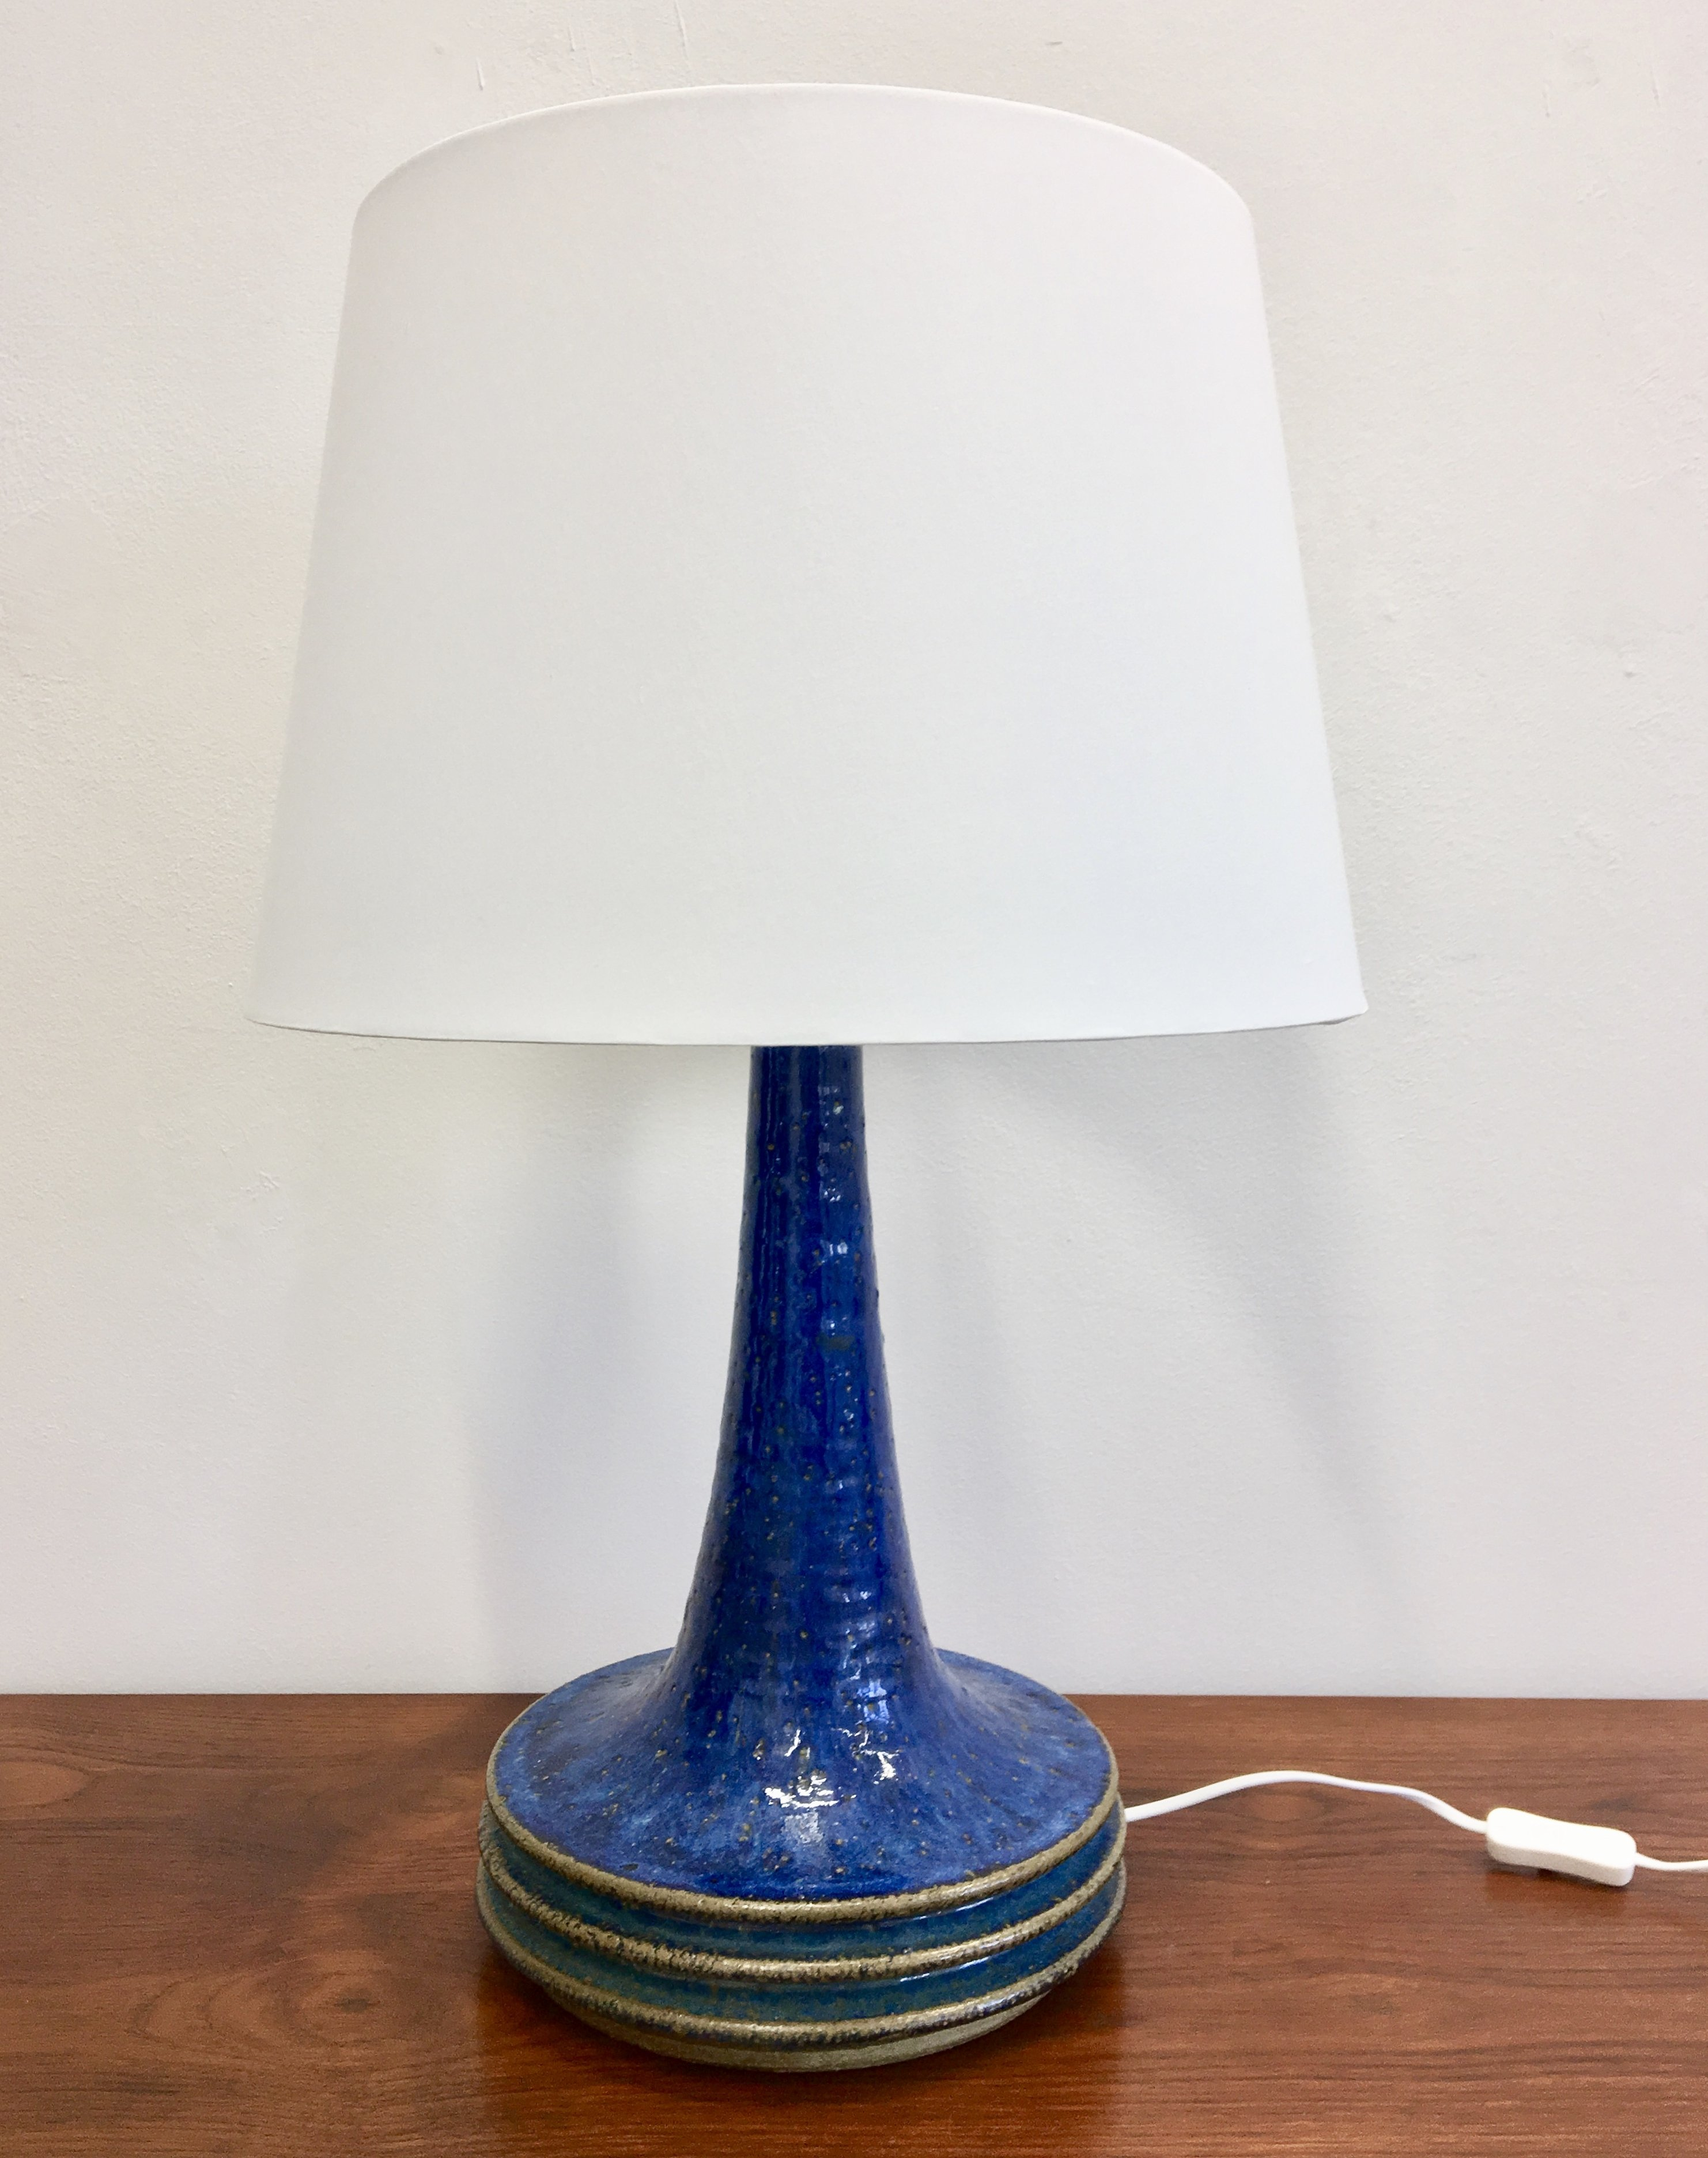 Image of: Tall Danish Blue Mid Century Modern Ceramic Table Lamp By Axella For Tromborg 78945